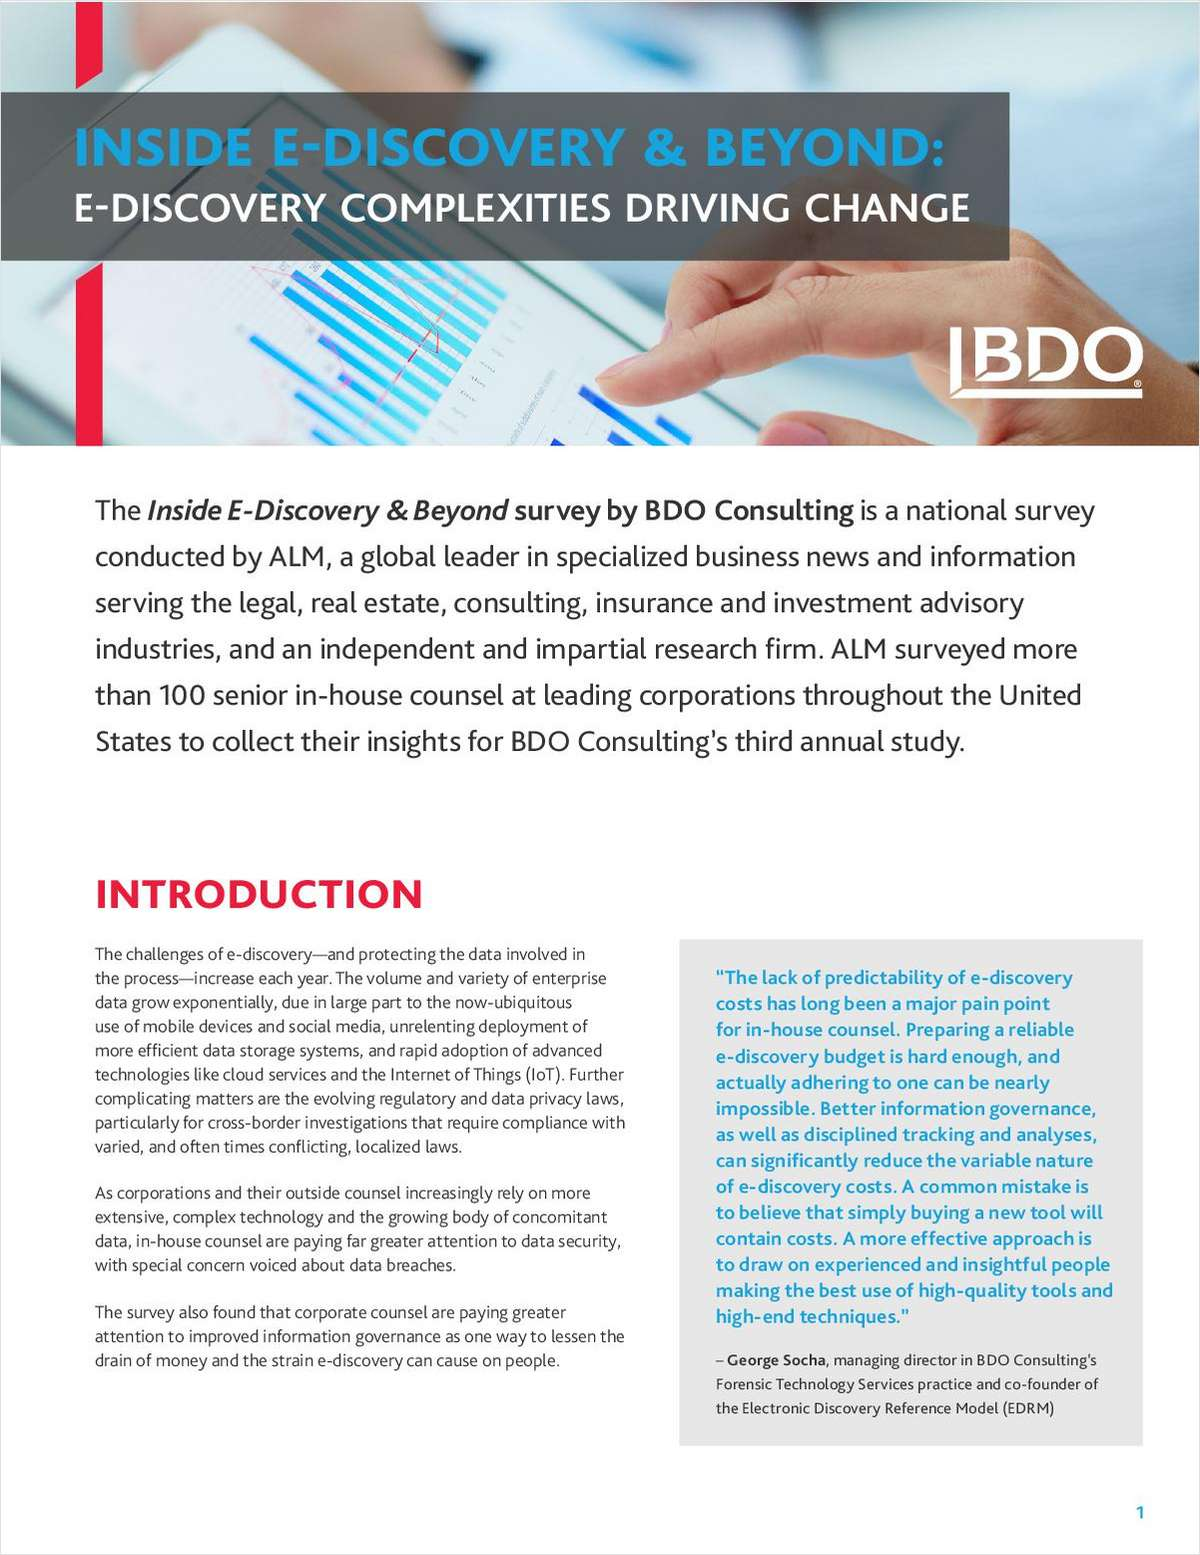 Inside E-Discovery & Beyond: E-Discovery Complexities Driving Change